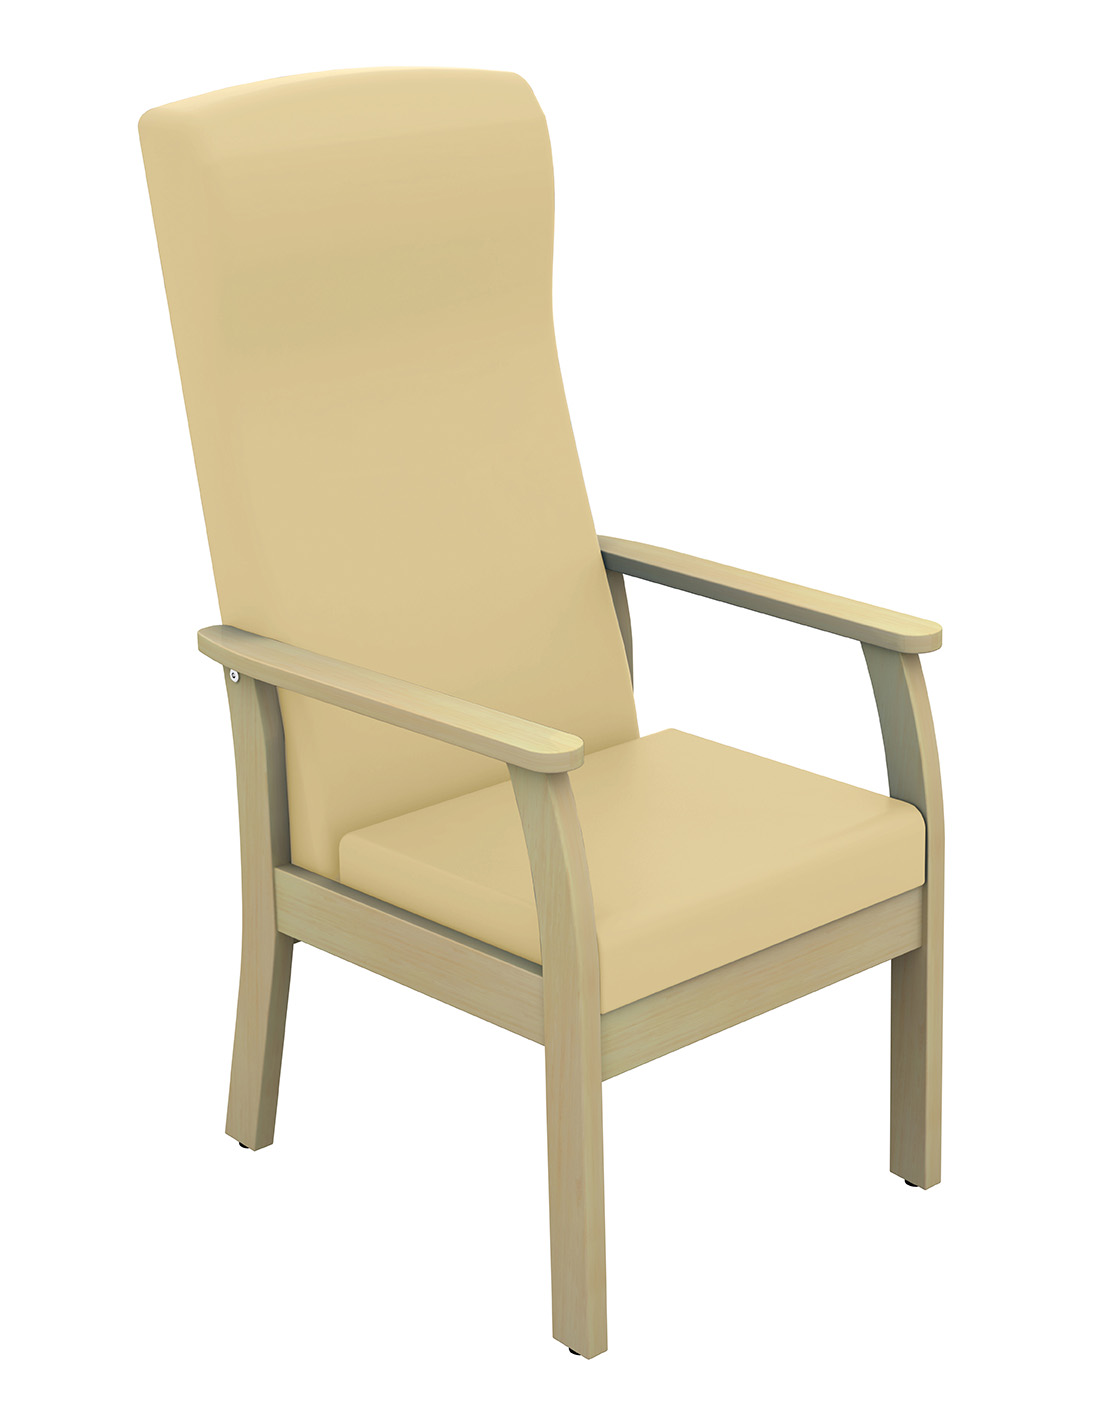 High Back Patient Arm Chair Vinyl Fabric | Medical Supermarket